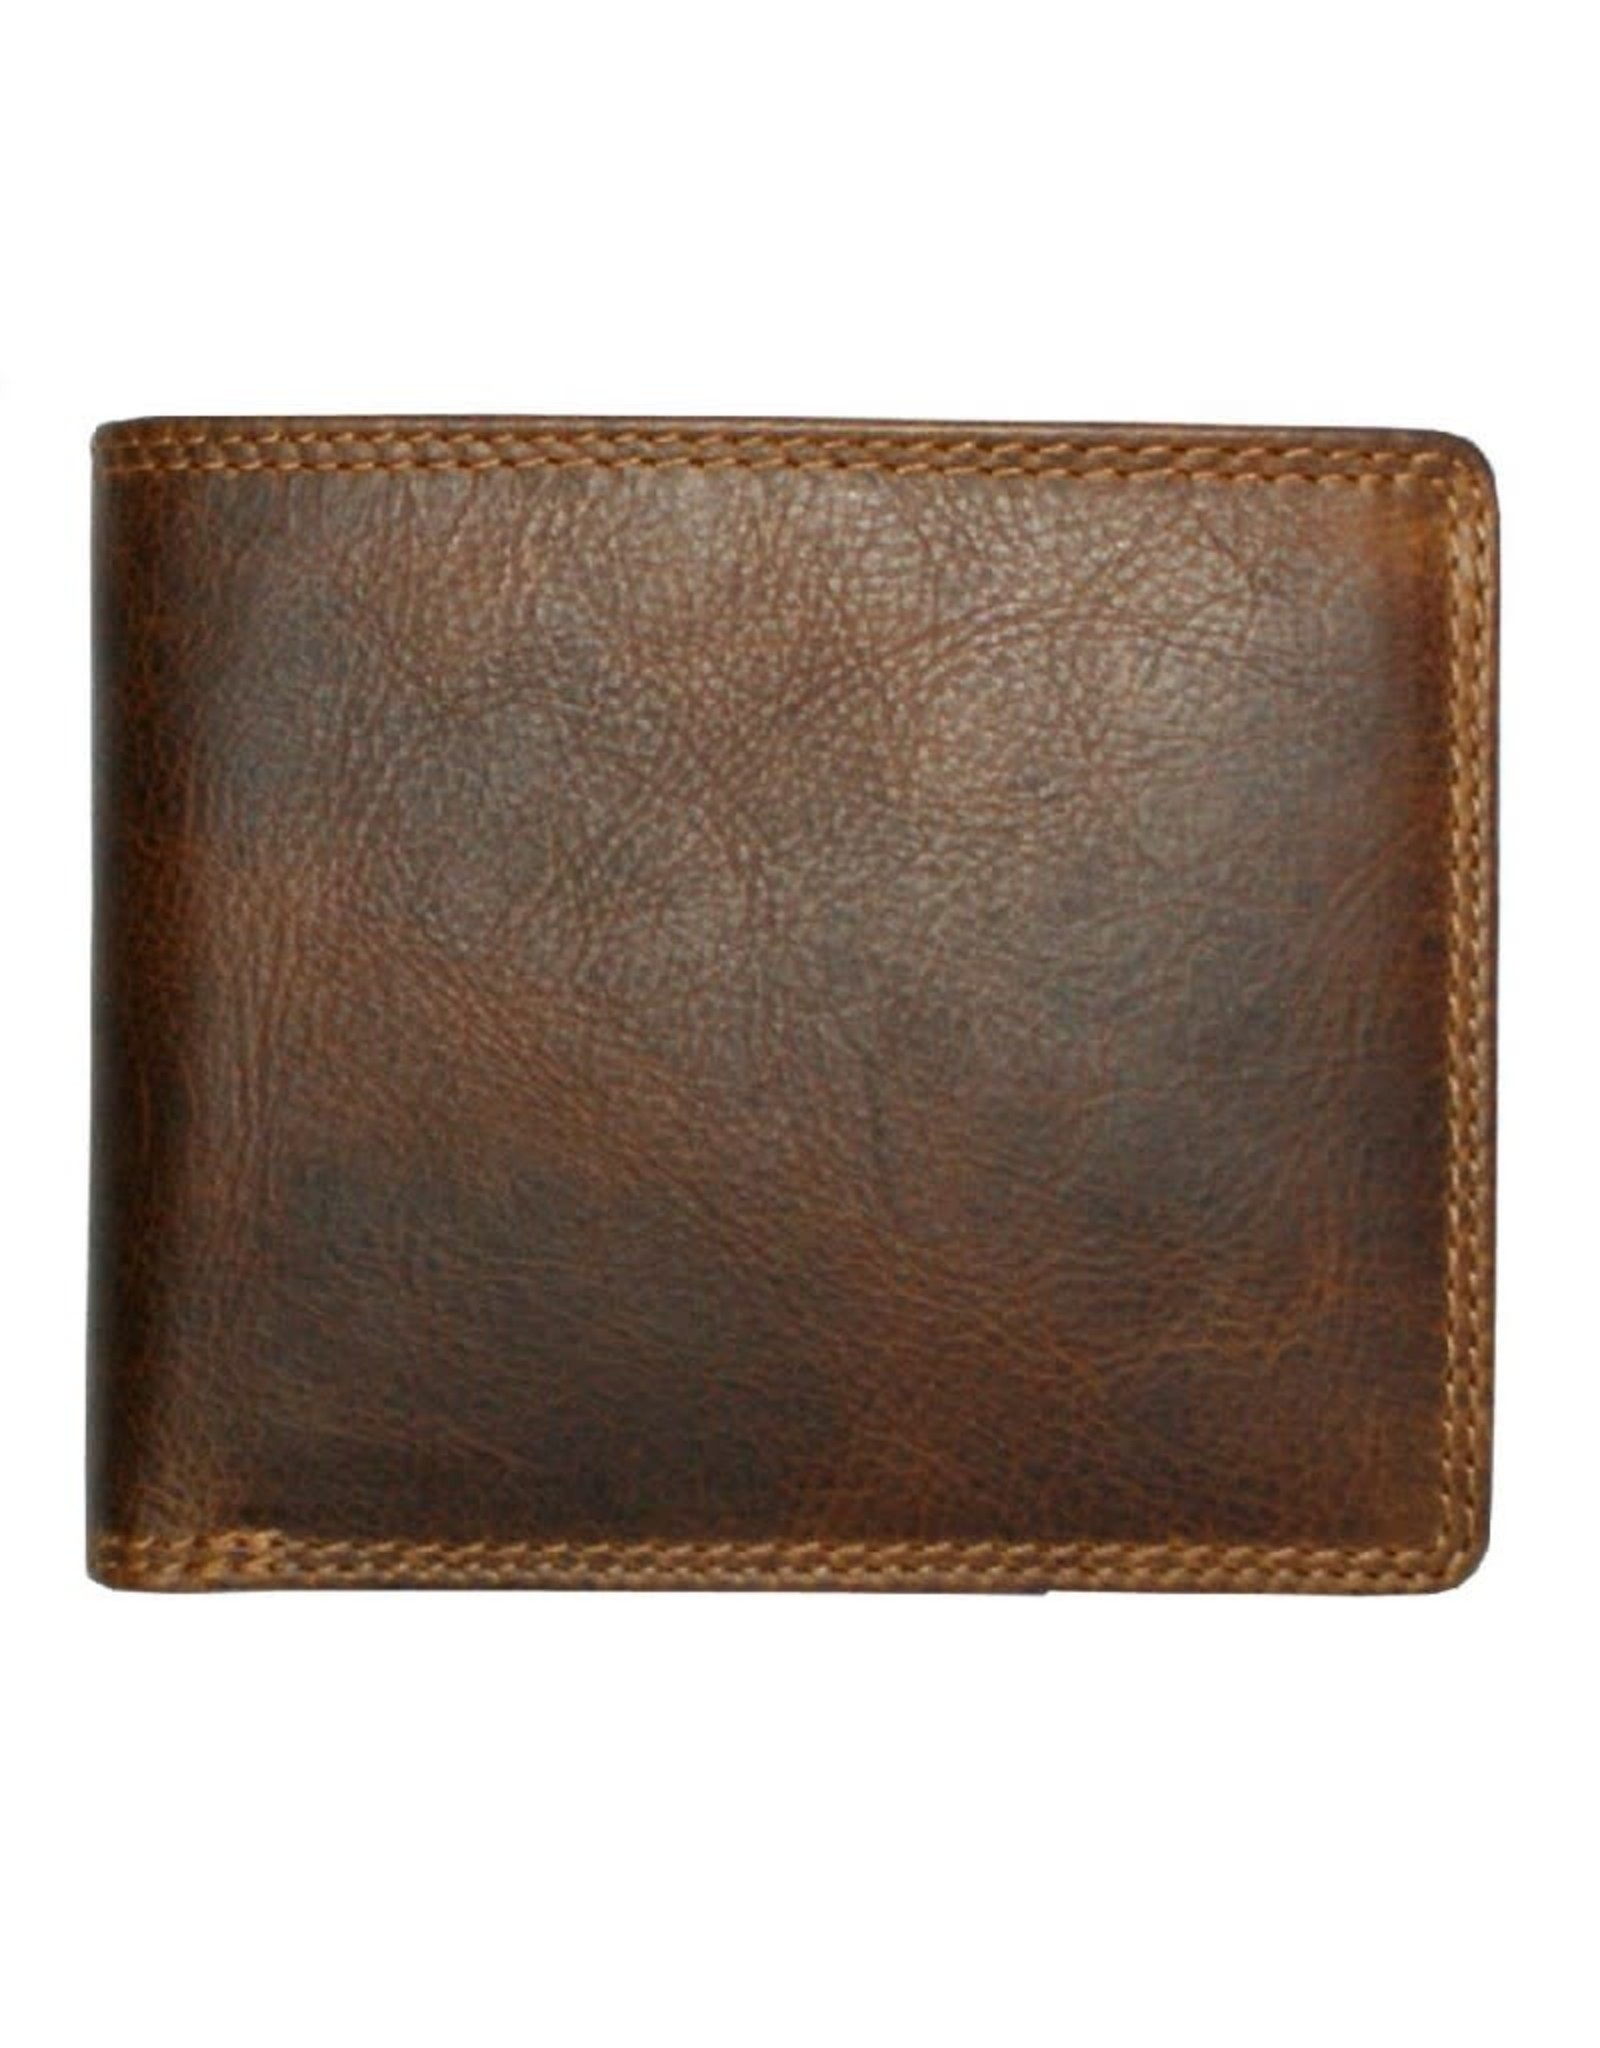 """Rugged Earth Rugged Earth 990008 Portefeuille Brown W4 3/4""""*H4""""*D3/4"""""""